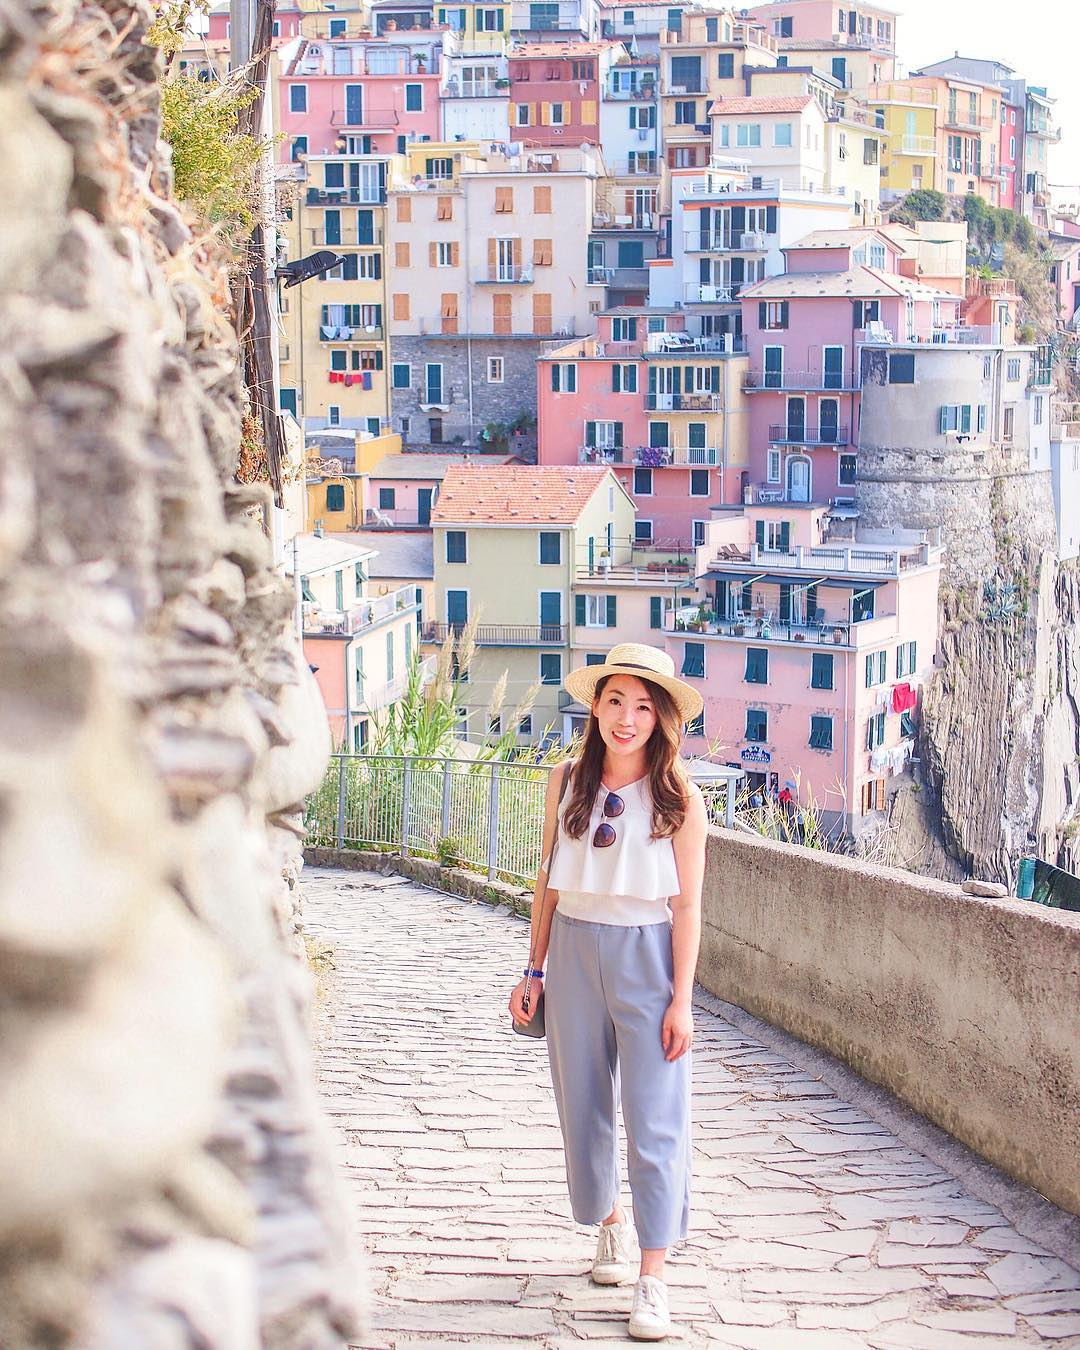 8 Ways To Bring Down Those GlobeTrotting Costs - Cinque Terre, Italy